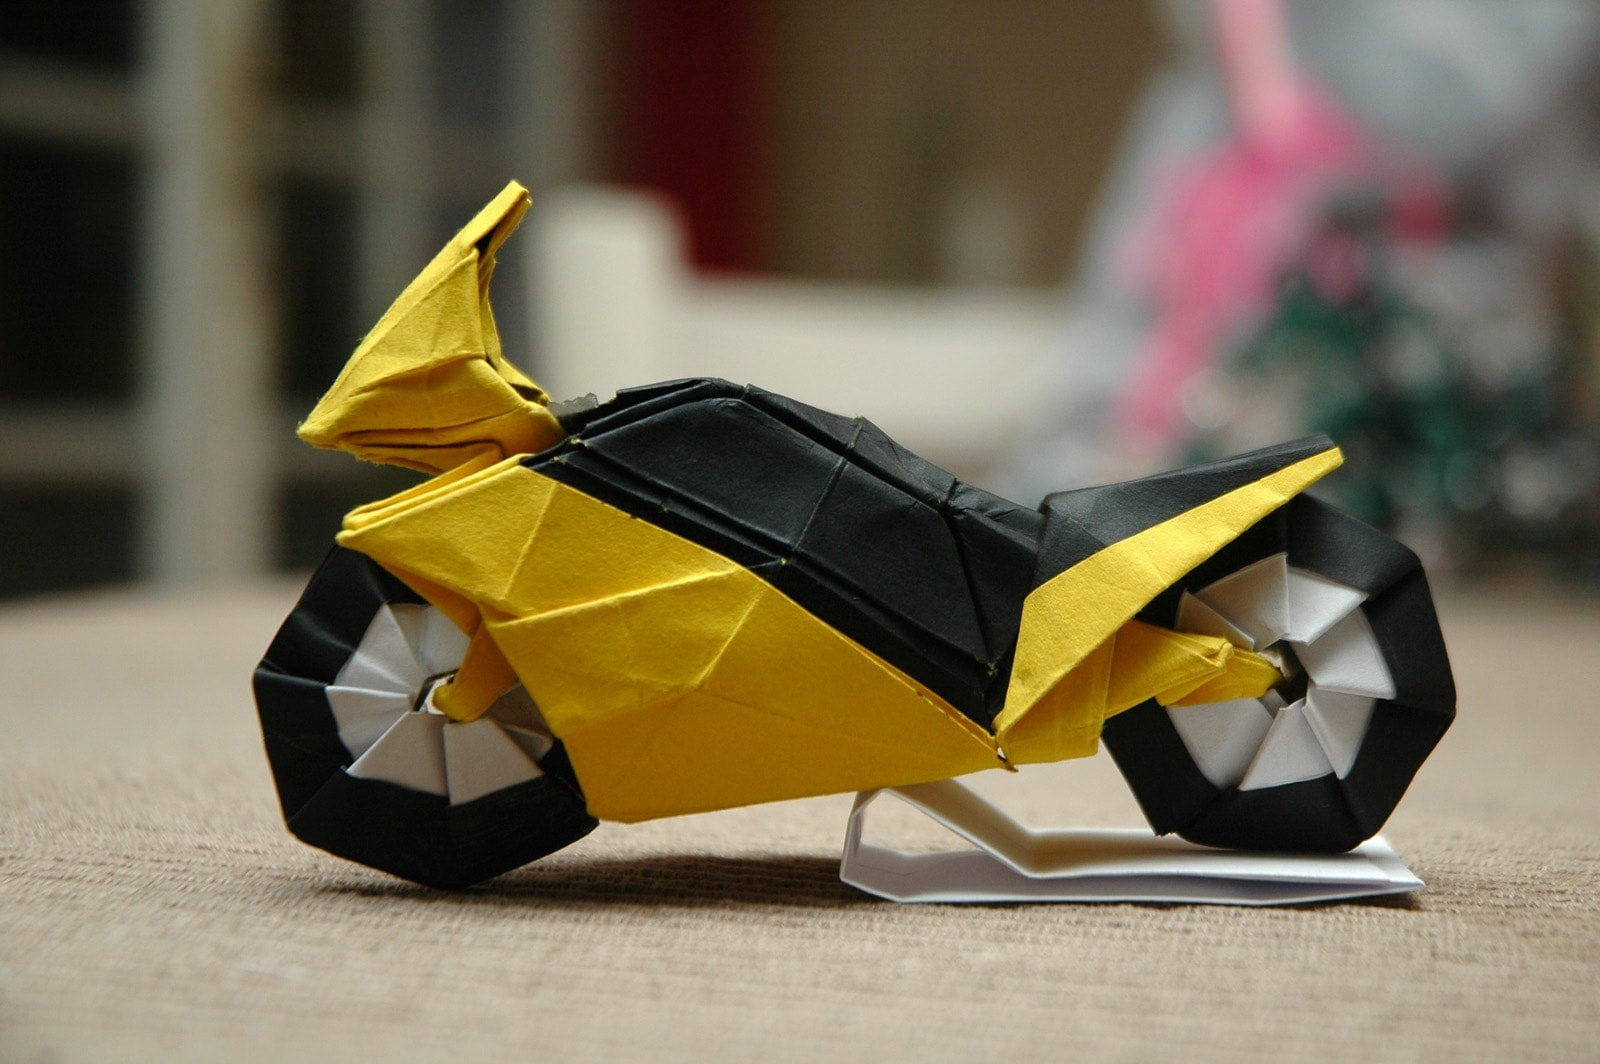 I Could Harley Wait To Show You These Origami Vehicles